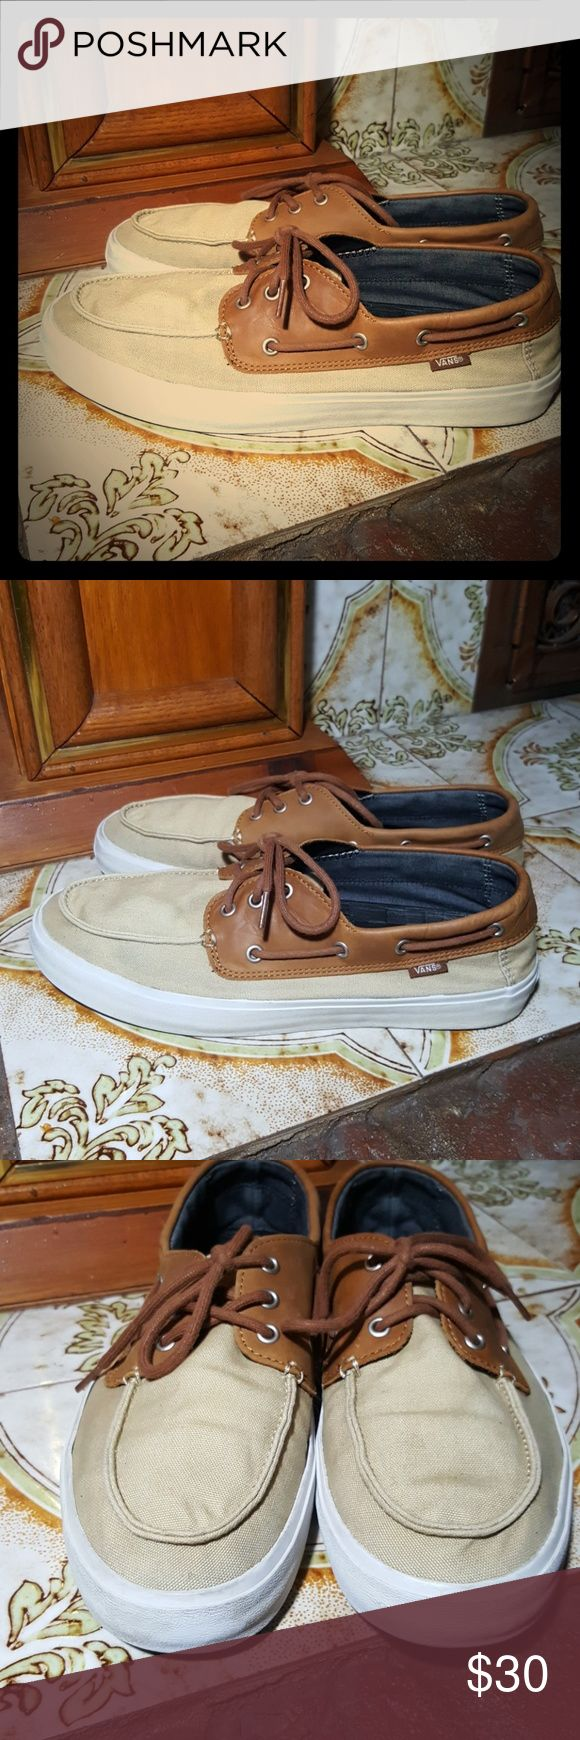 Vans Canvas Boat Shoes/Sneakers Mens US 11.5 These are in good pre-owned condition no holes or tears on uppers soles are in great condition. Please see pictures...Thanks for looking! Vans Shoes Boat Shoes